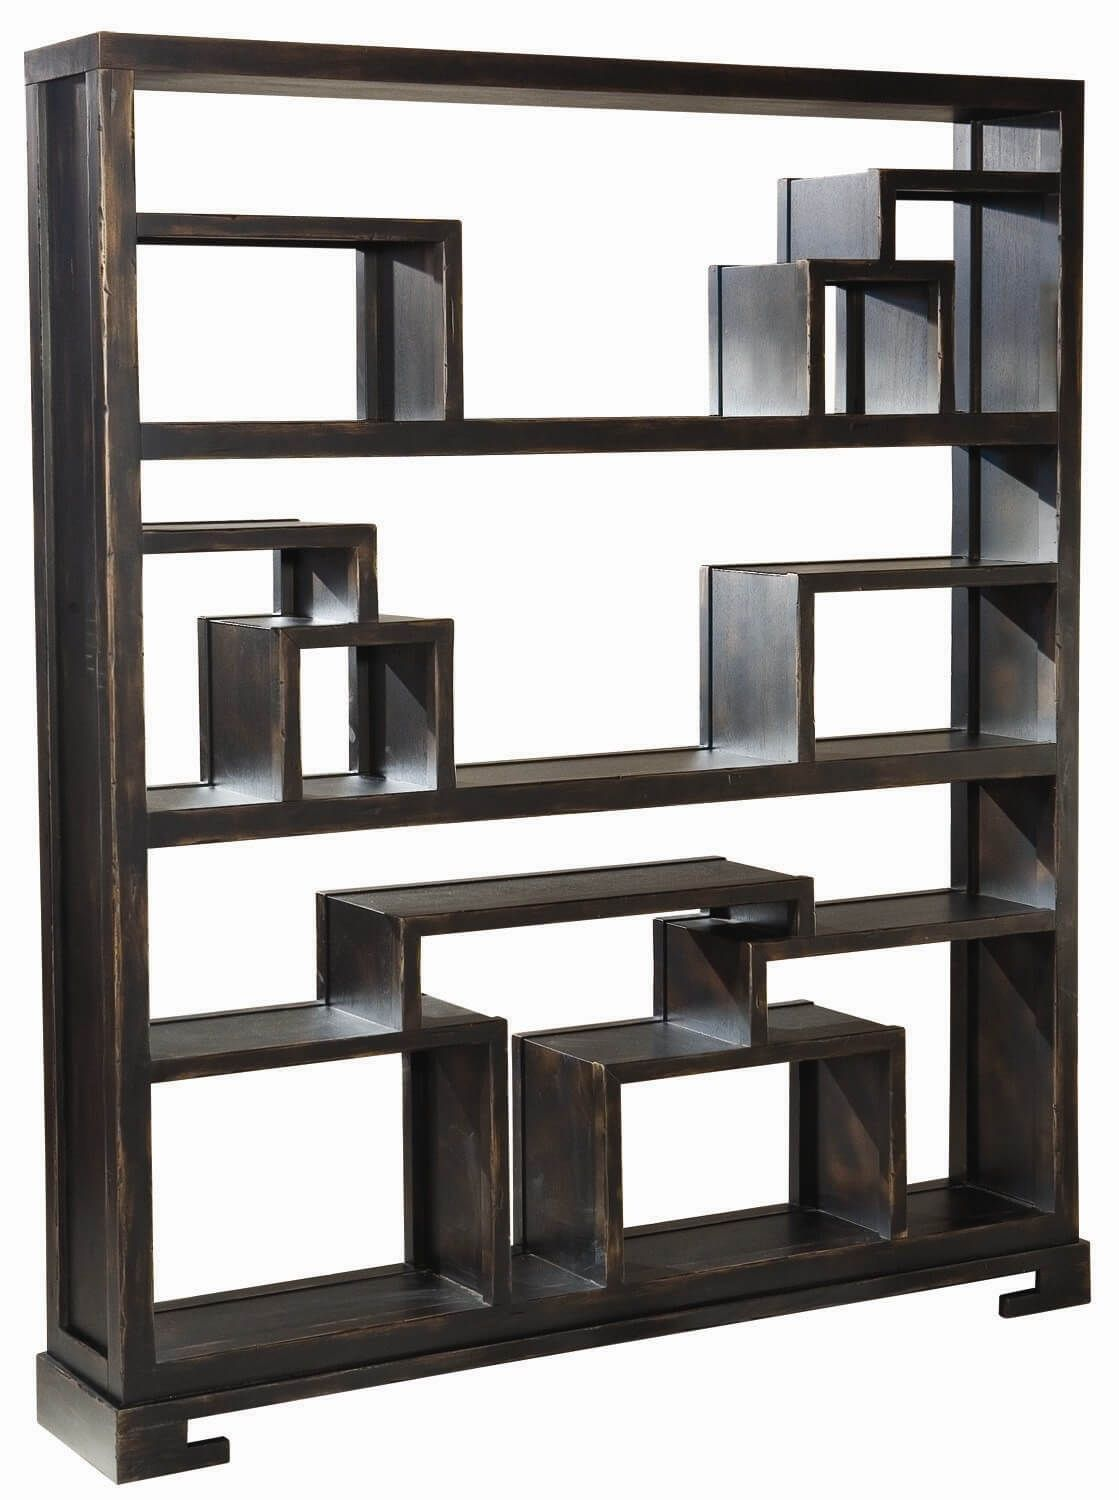 Backless Bookshelves This is an intricate 12-cube backless shelf with many sections - each a  different shape and size.